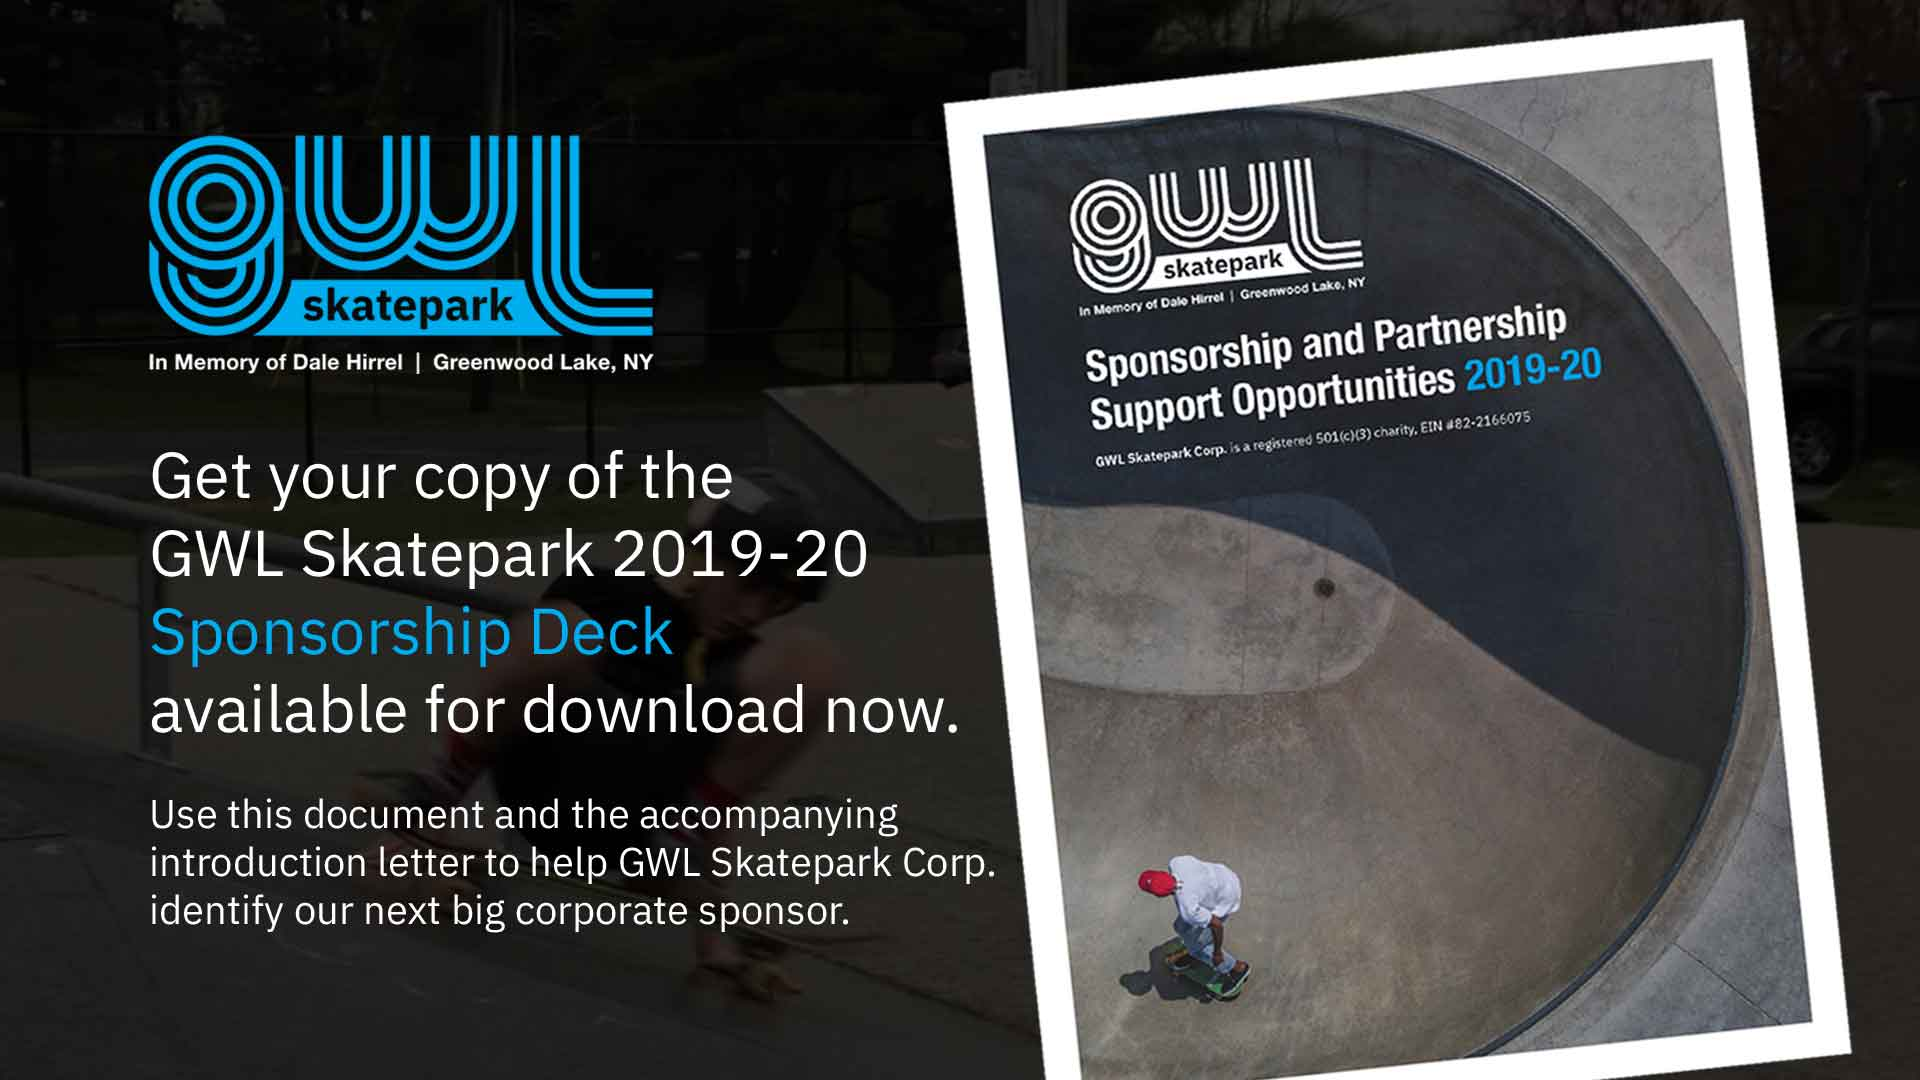 GWLSkatePark Skate Sponsorship Deck, Fundraising for everyone, Do It For Dale, Greenwood Lake NY